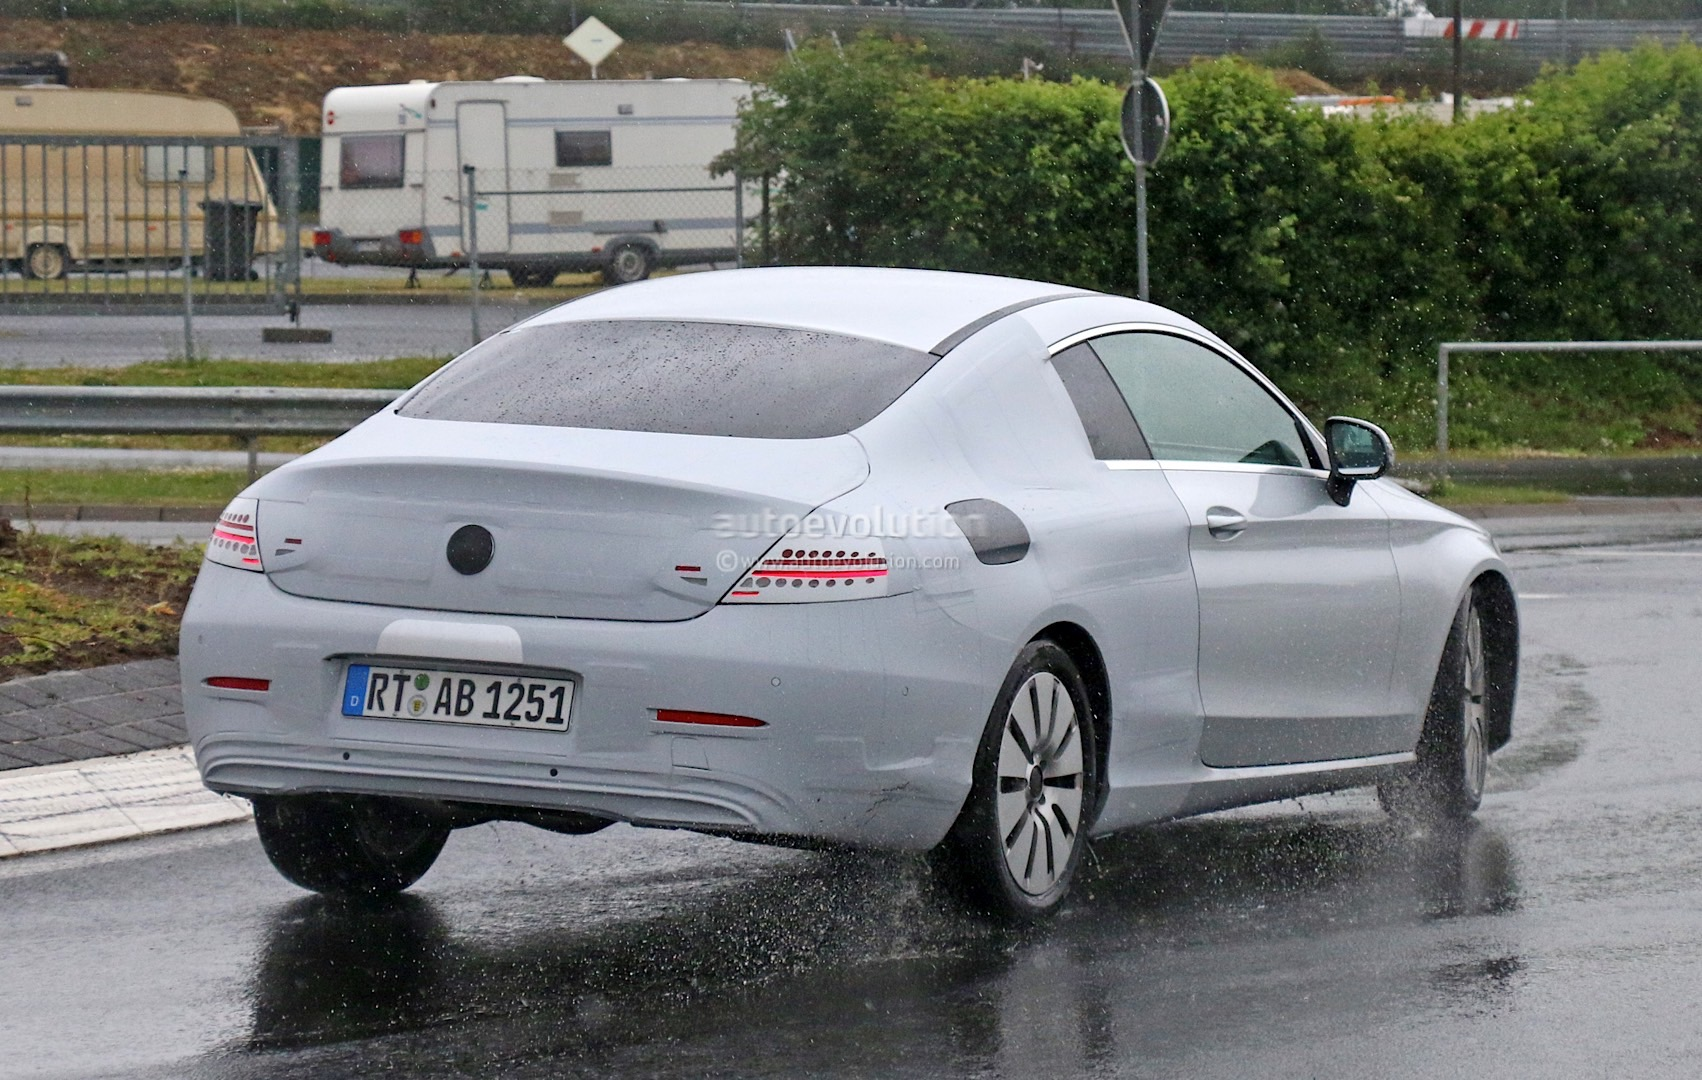 Mercedes benz c class coupe spied half naked looks like a for Mercedes benz c350 coupe